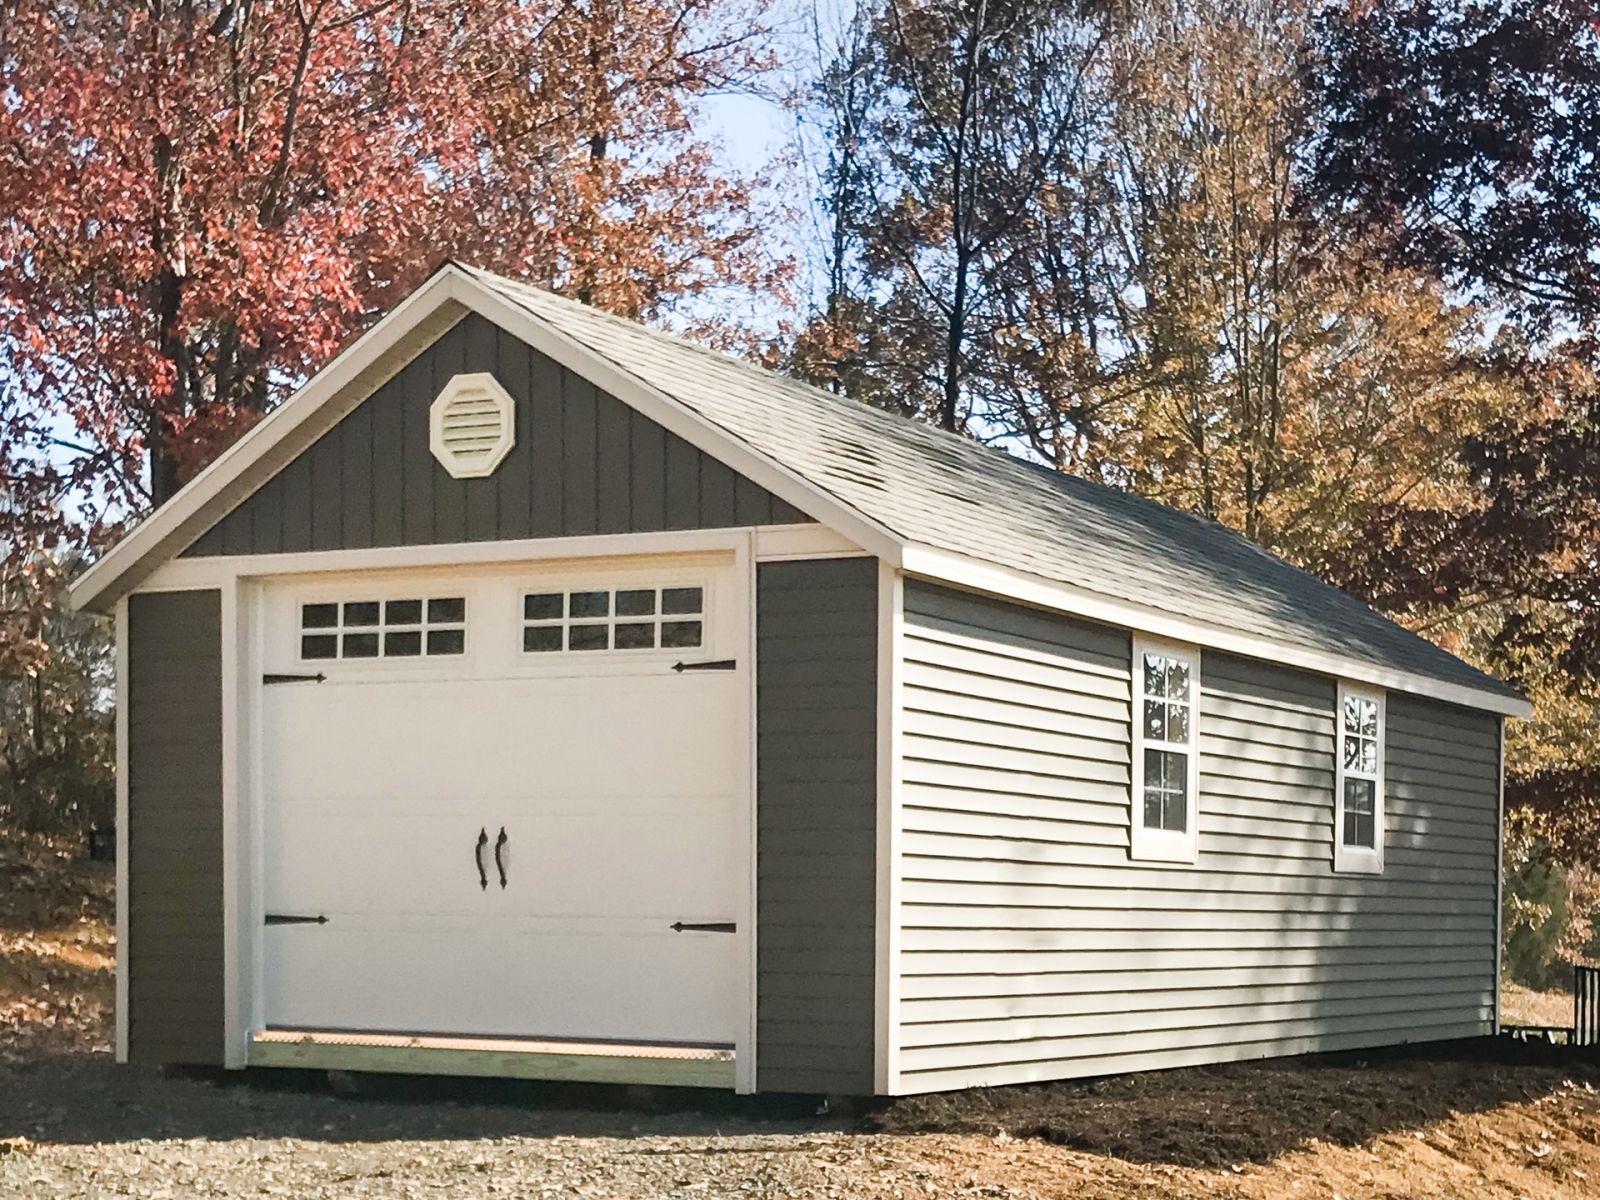 A portable garage shed for sale in Bowling Green, KY